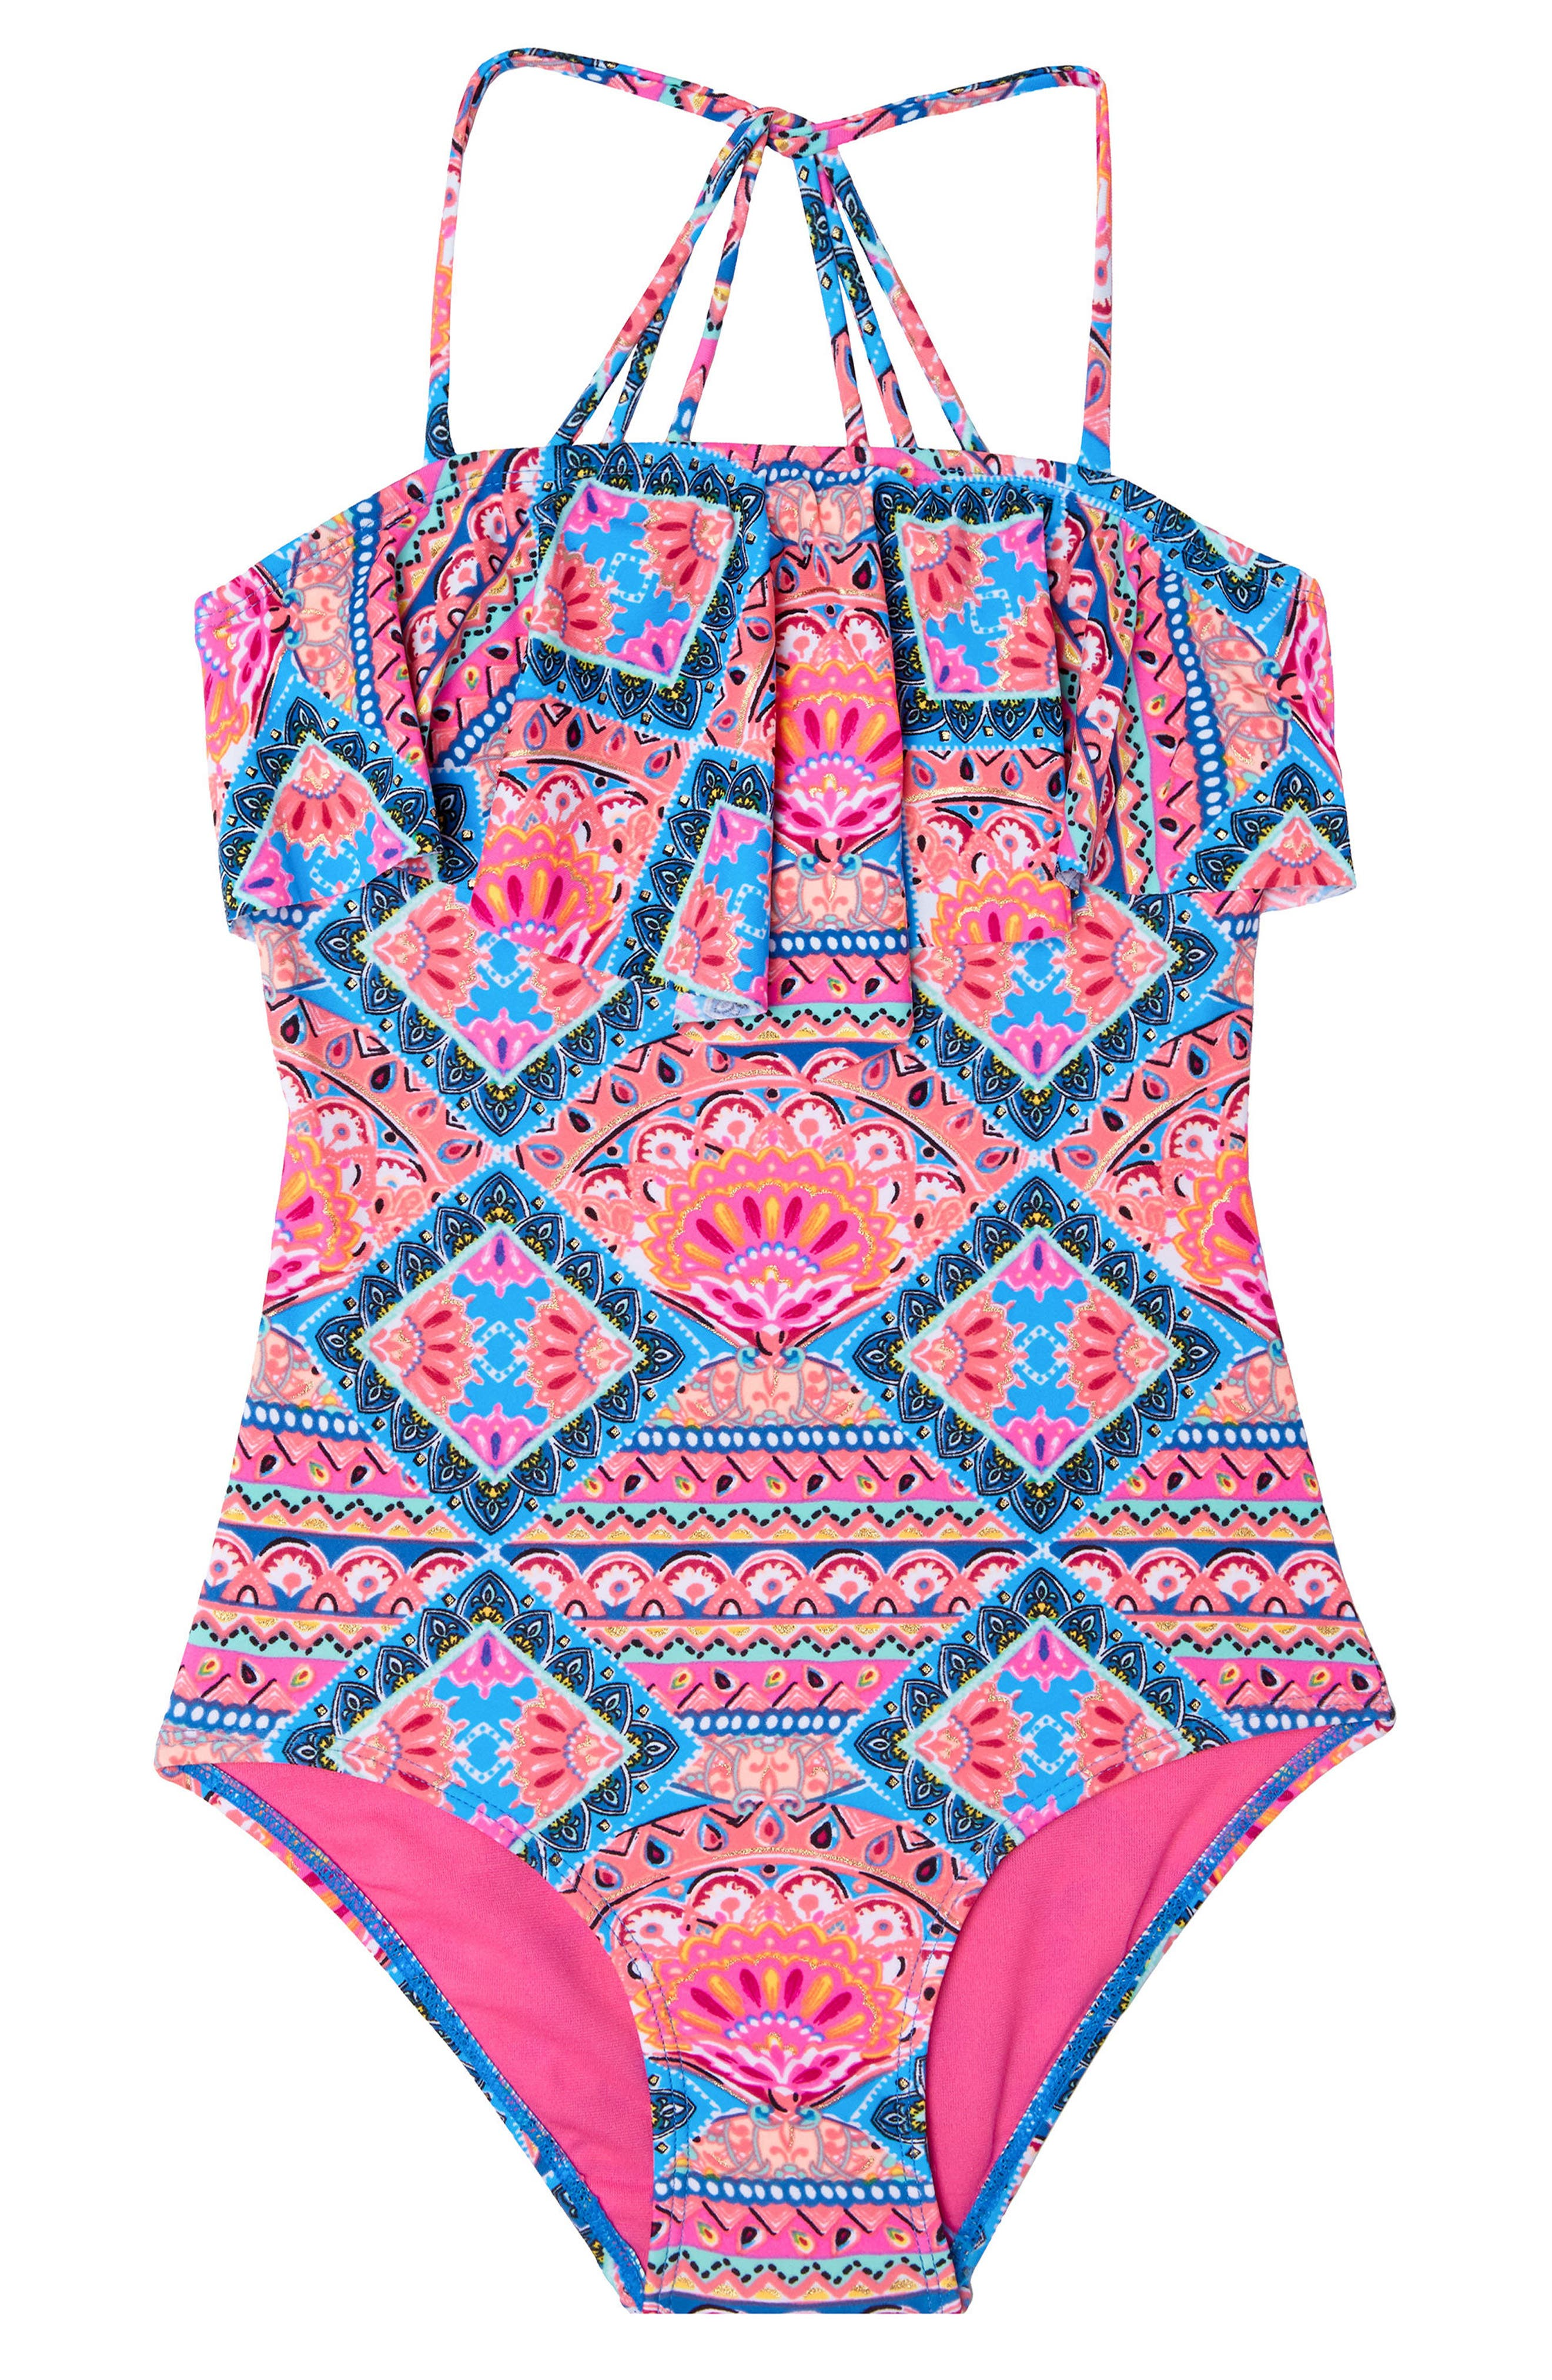 Alternate Image 1 Selected - Gossip Girl Mixed Print One-Piece Swimsuit (Big Girls)